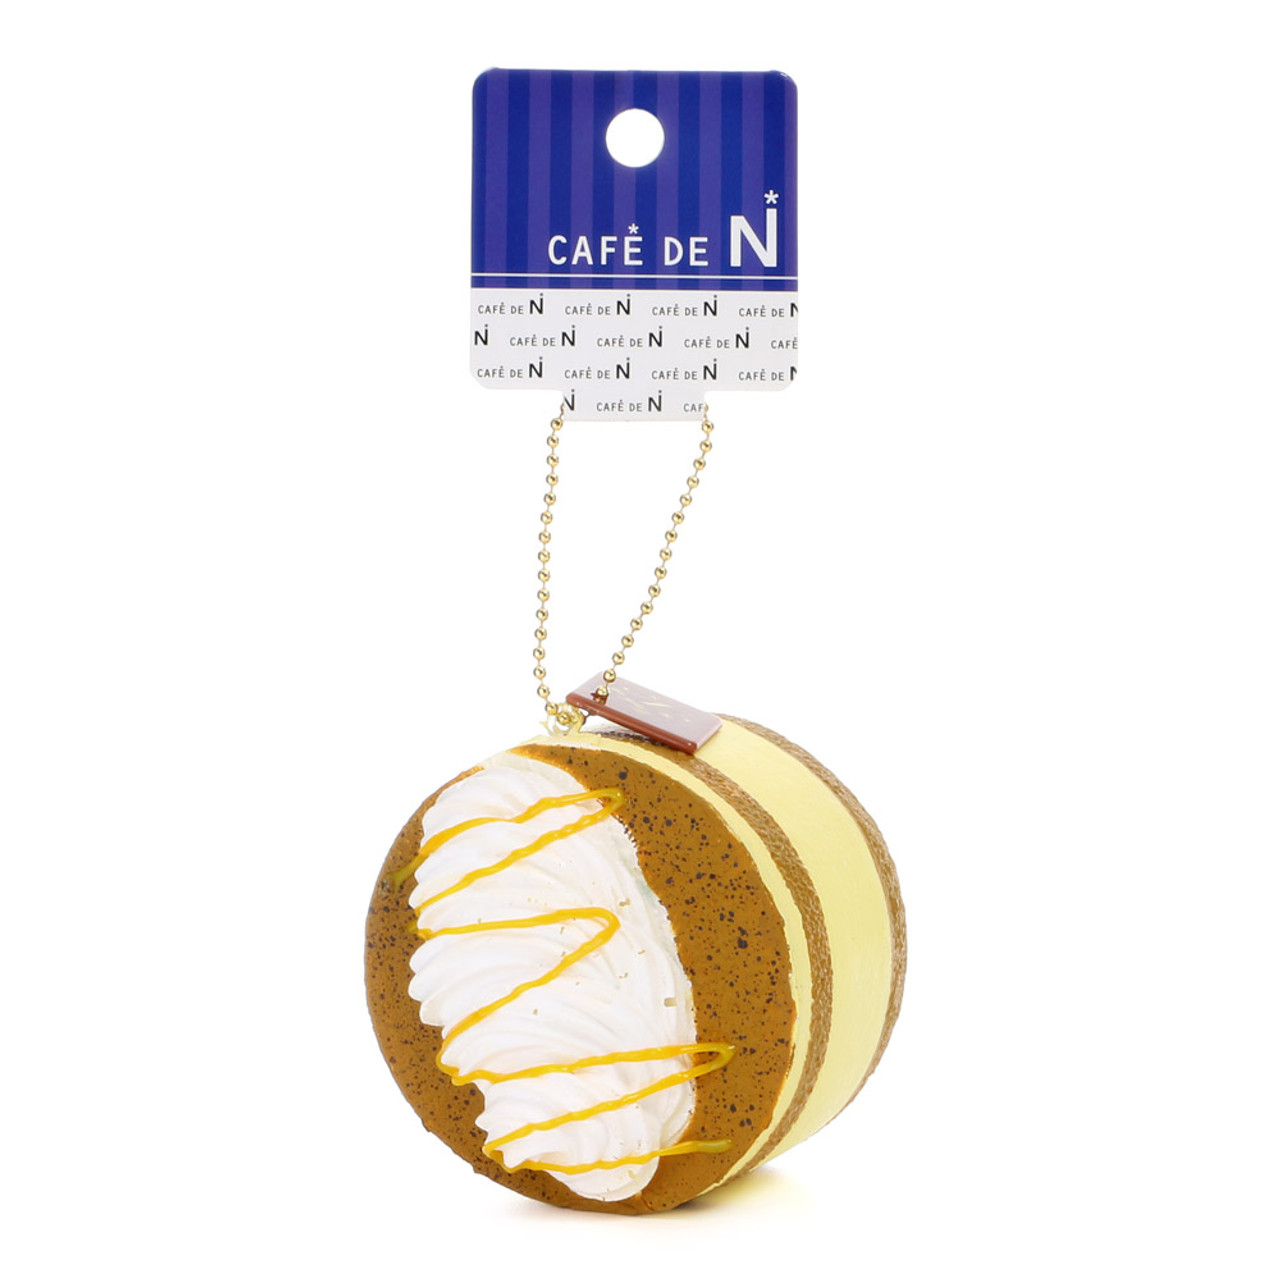 Café De N Tiramisu Squishy Caramel Yellow Brown Soft Kawaii Cellphone Charms ( Tag View )